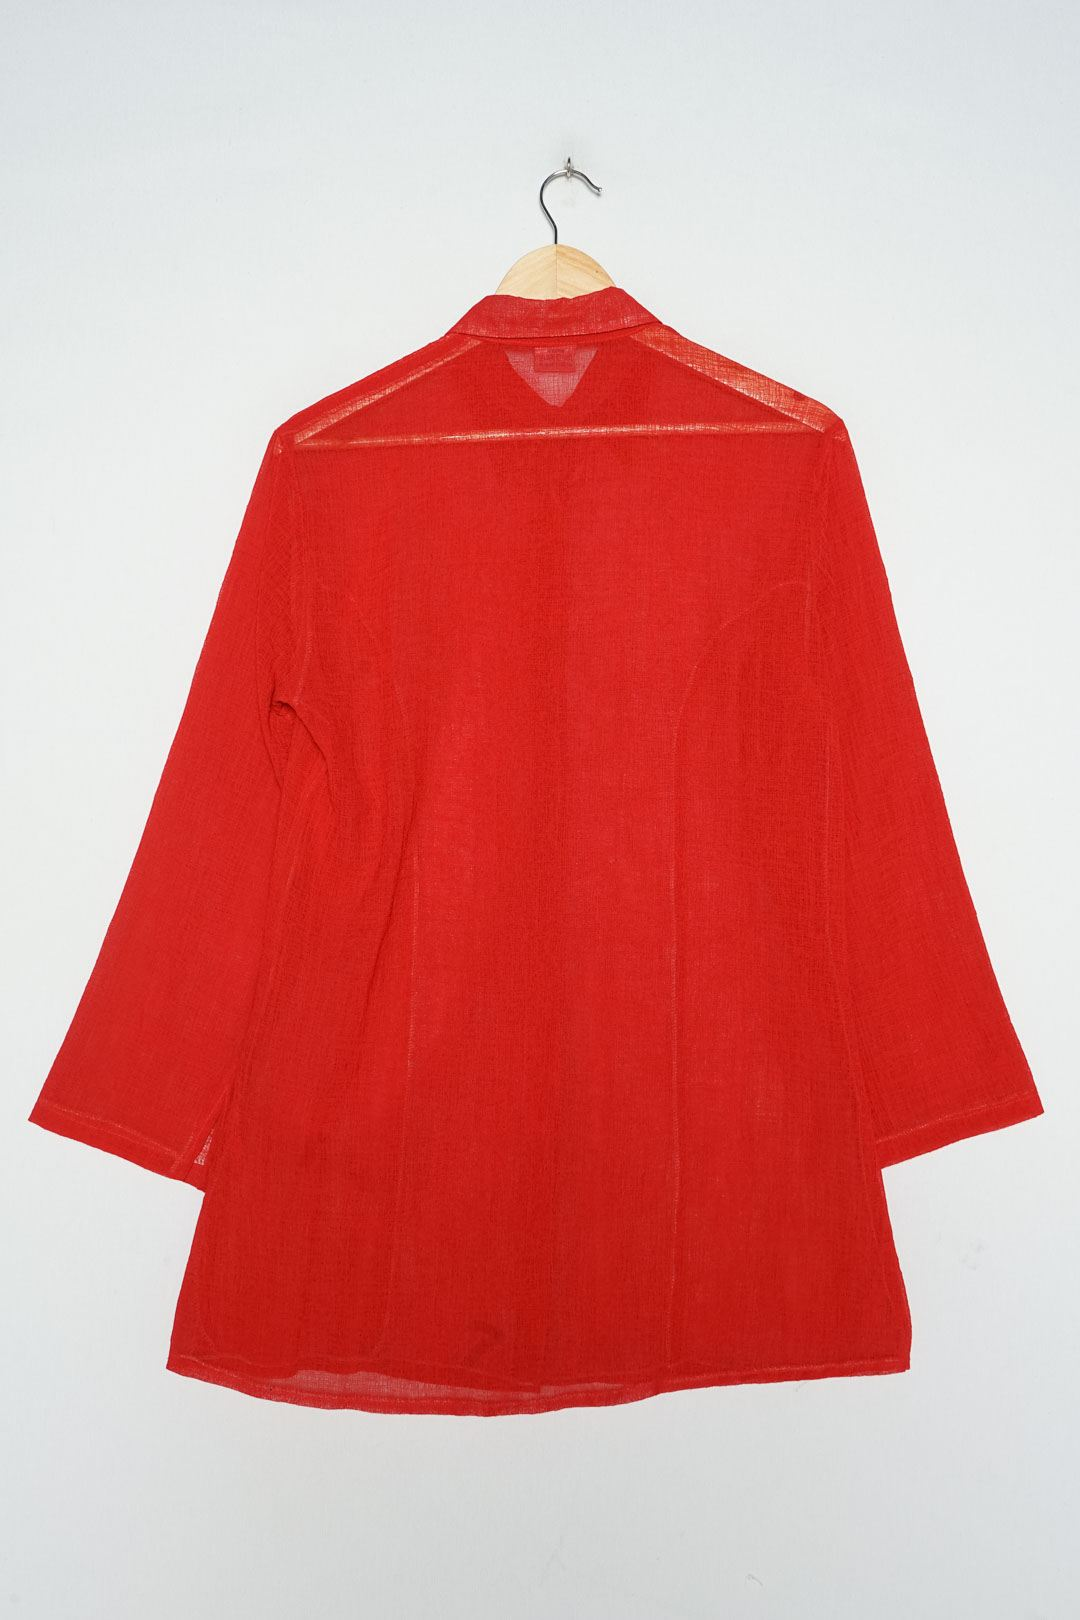 Vinokilo Red Satin Blouse M - VinoKilo.com